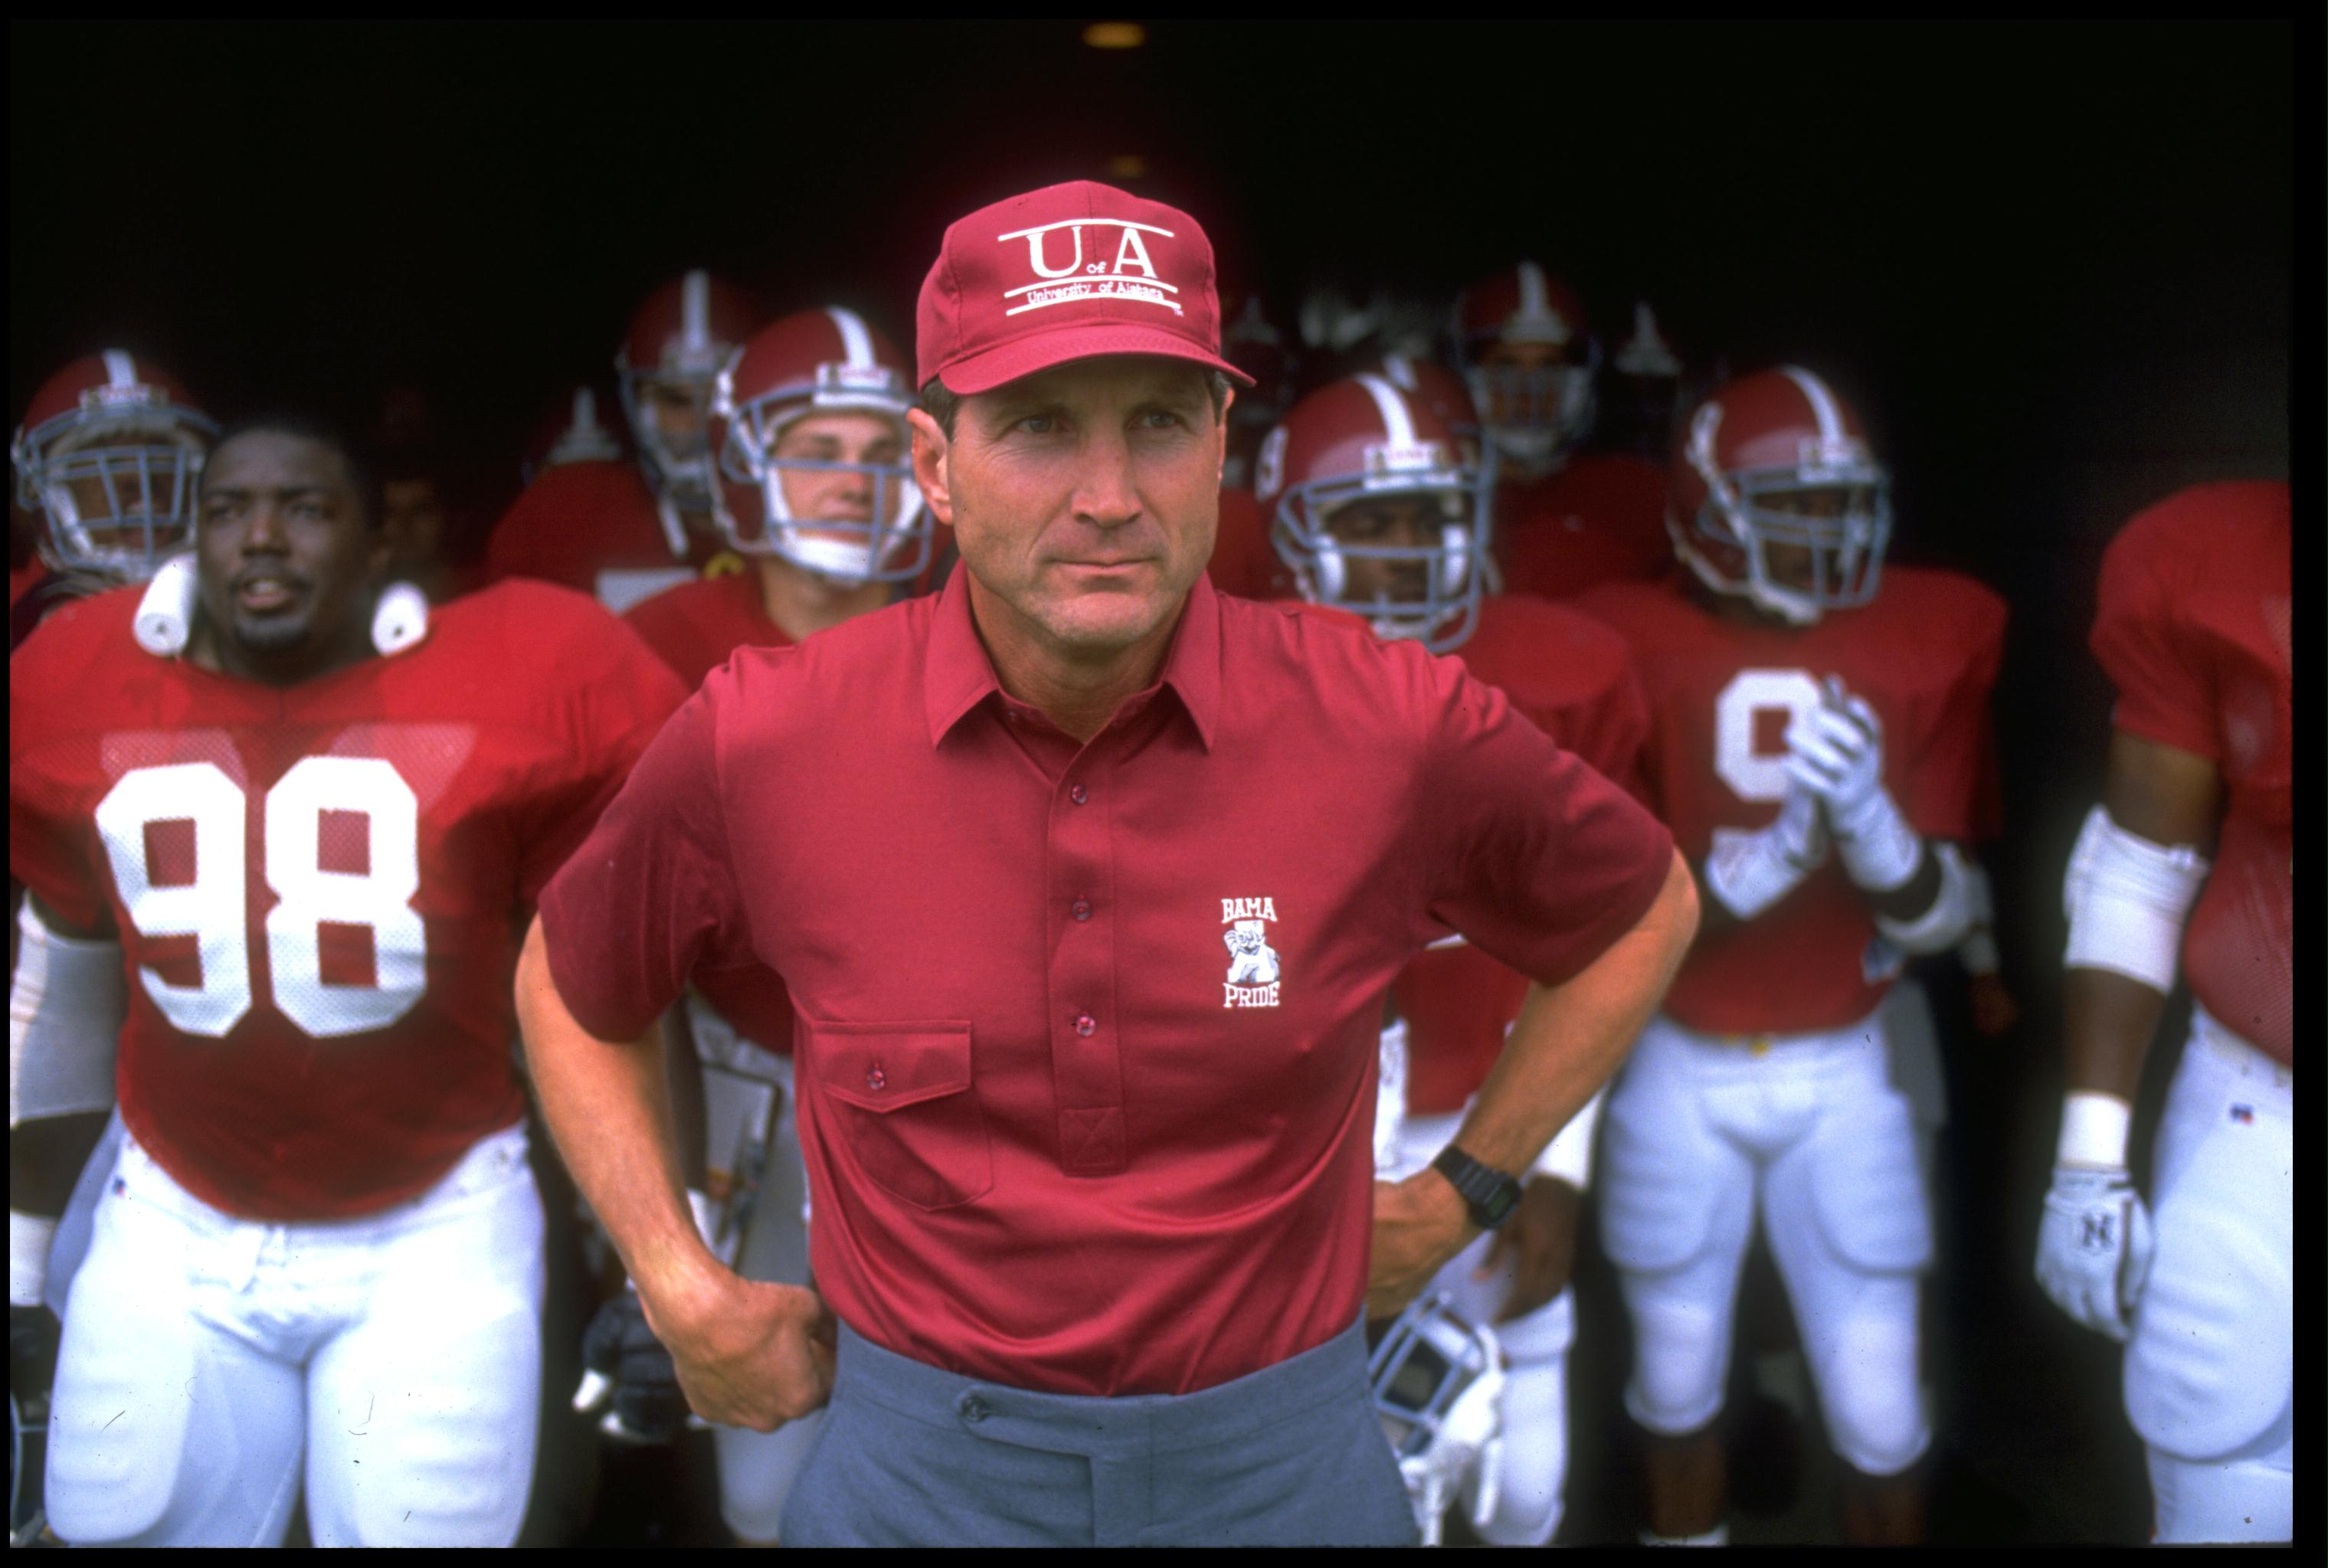 23 Sep 1989: UNIVERSITY OF ALABAMA HEAD COACH BILL CURRY LEADS HIS TEAM OUT ONTO THE FIELD PRIOR TO THE CRIMSON TIDE 15-7 WIN OVER THE UNIVERSITY OF KENTUCKY WILDCATS